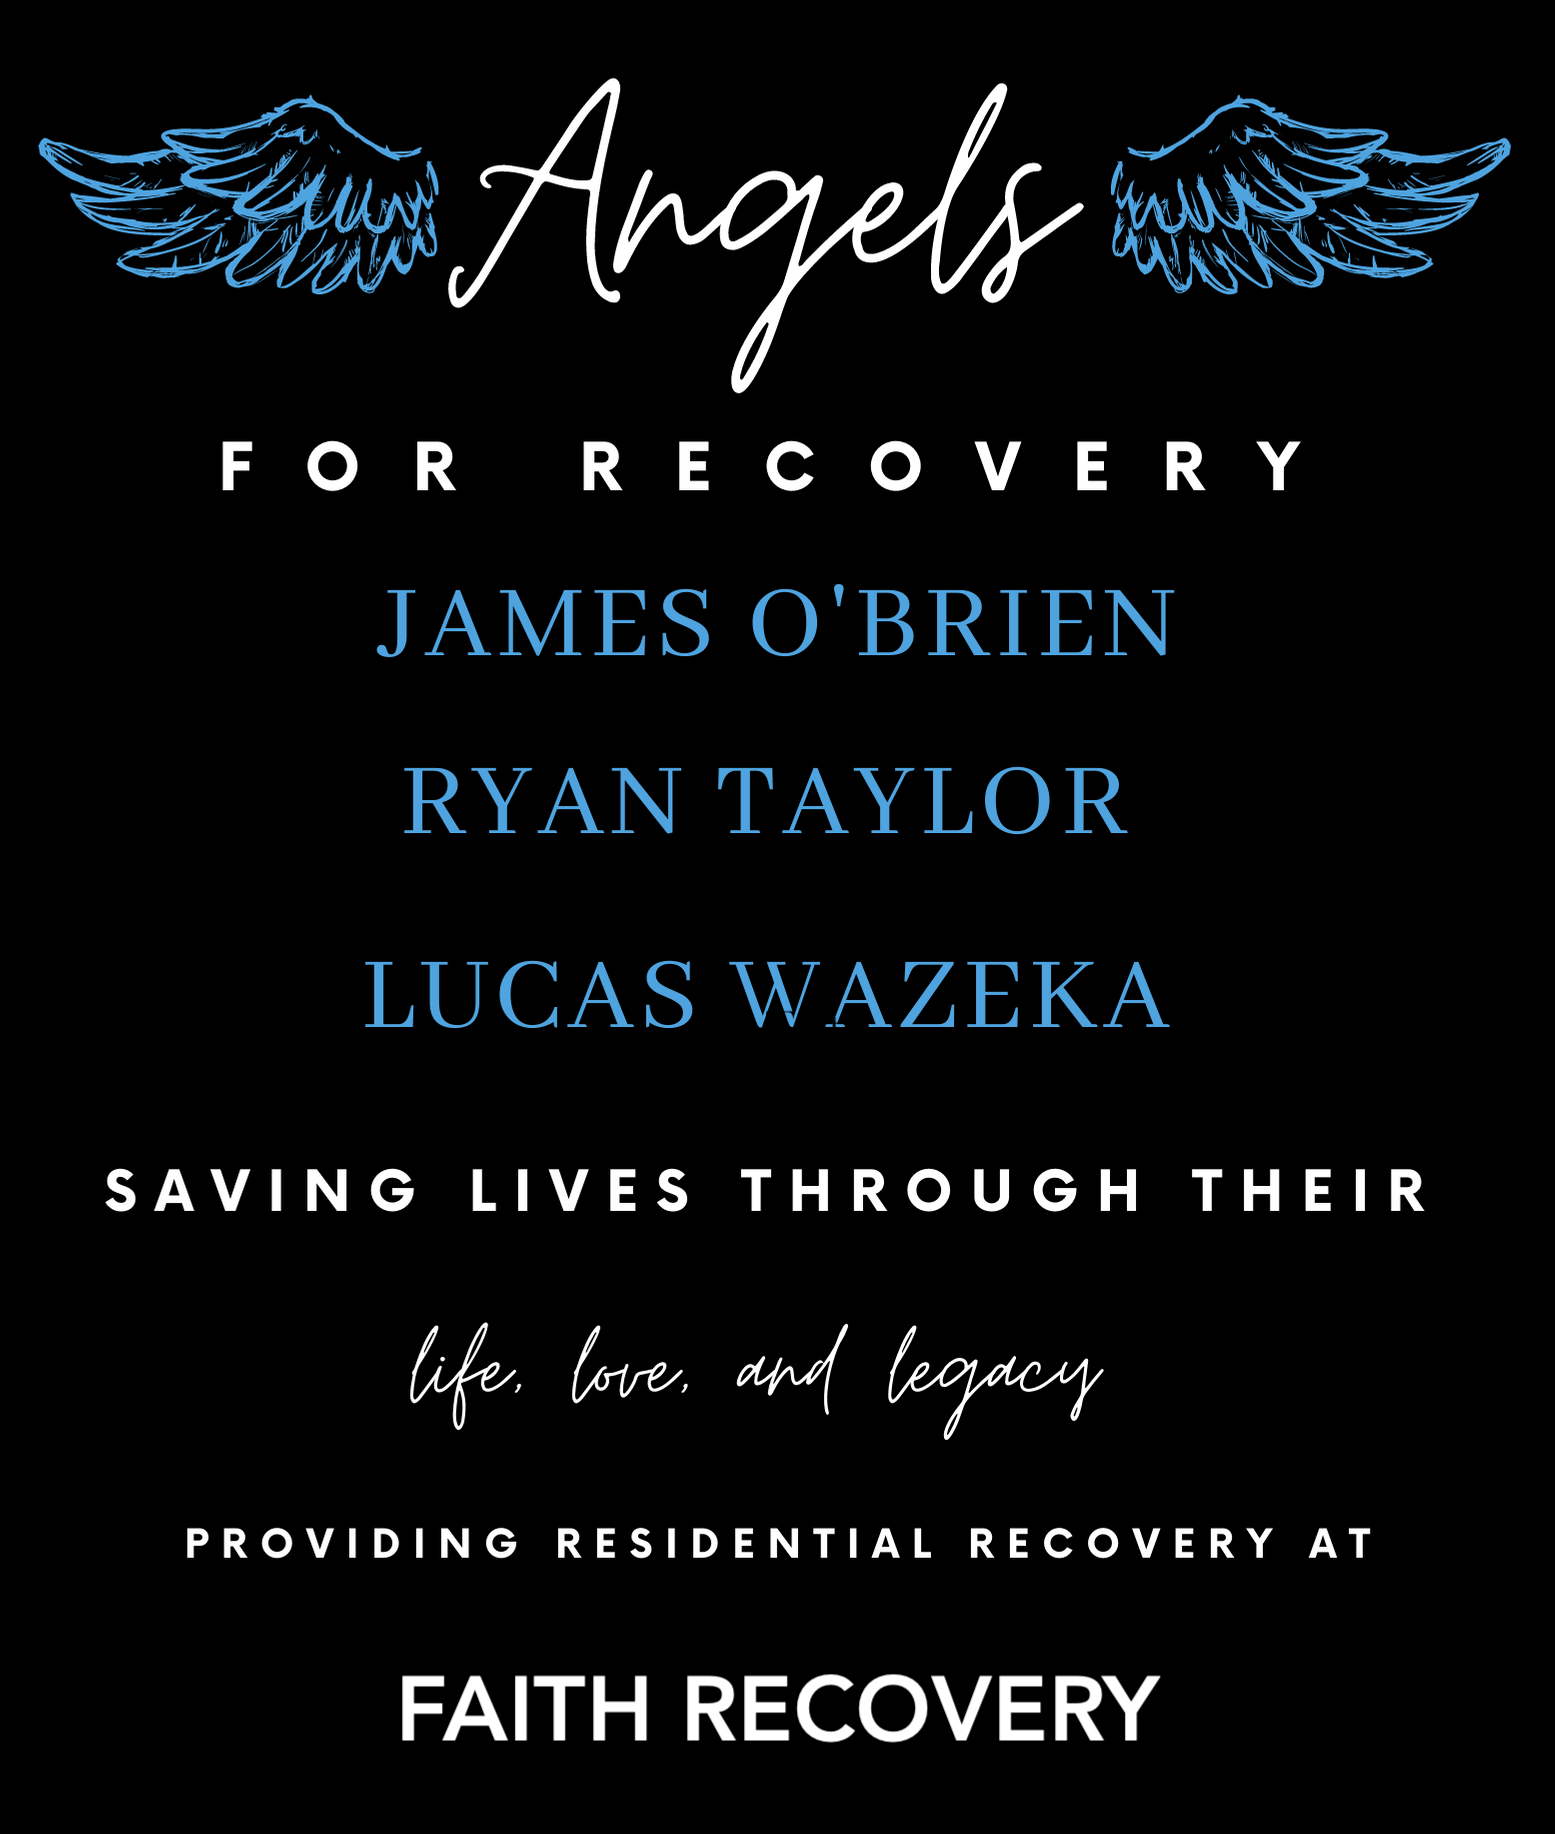 Angels for Recovery 2